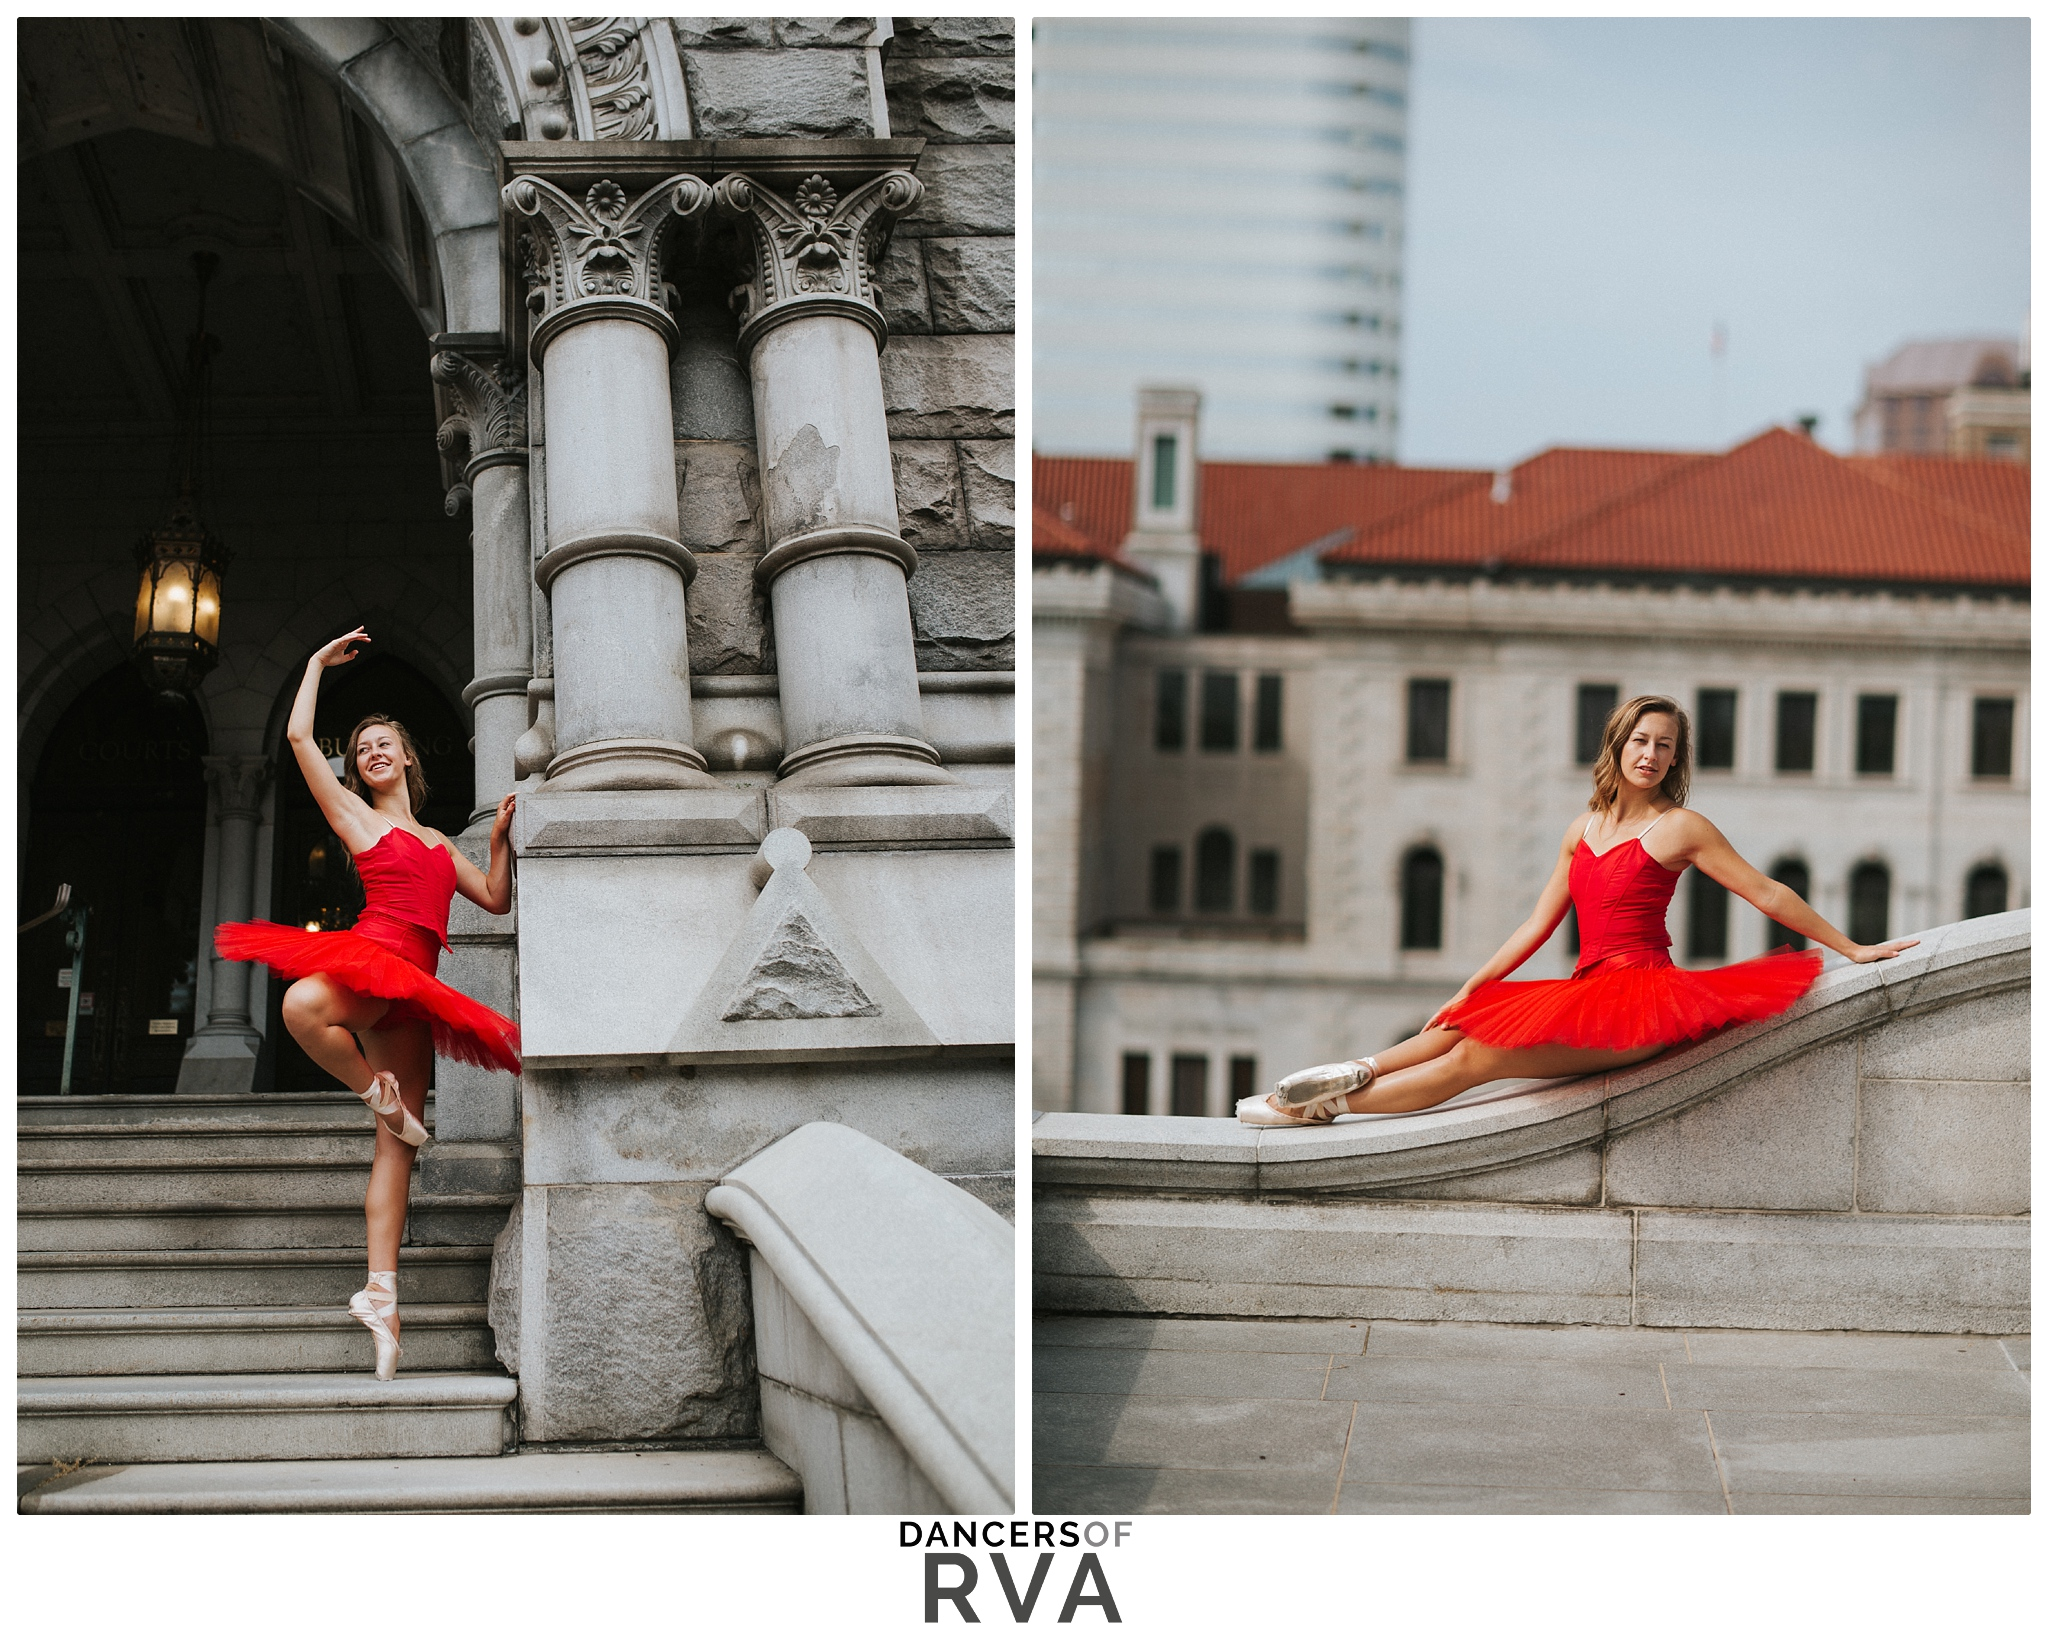 Richmond-VA-Capital-Photography-Dance-Session-Dance-Photographer-Gianna-Grace-Photography-Stavna-Ballet-Company